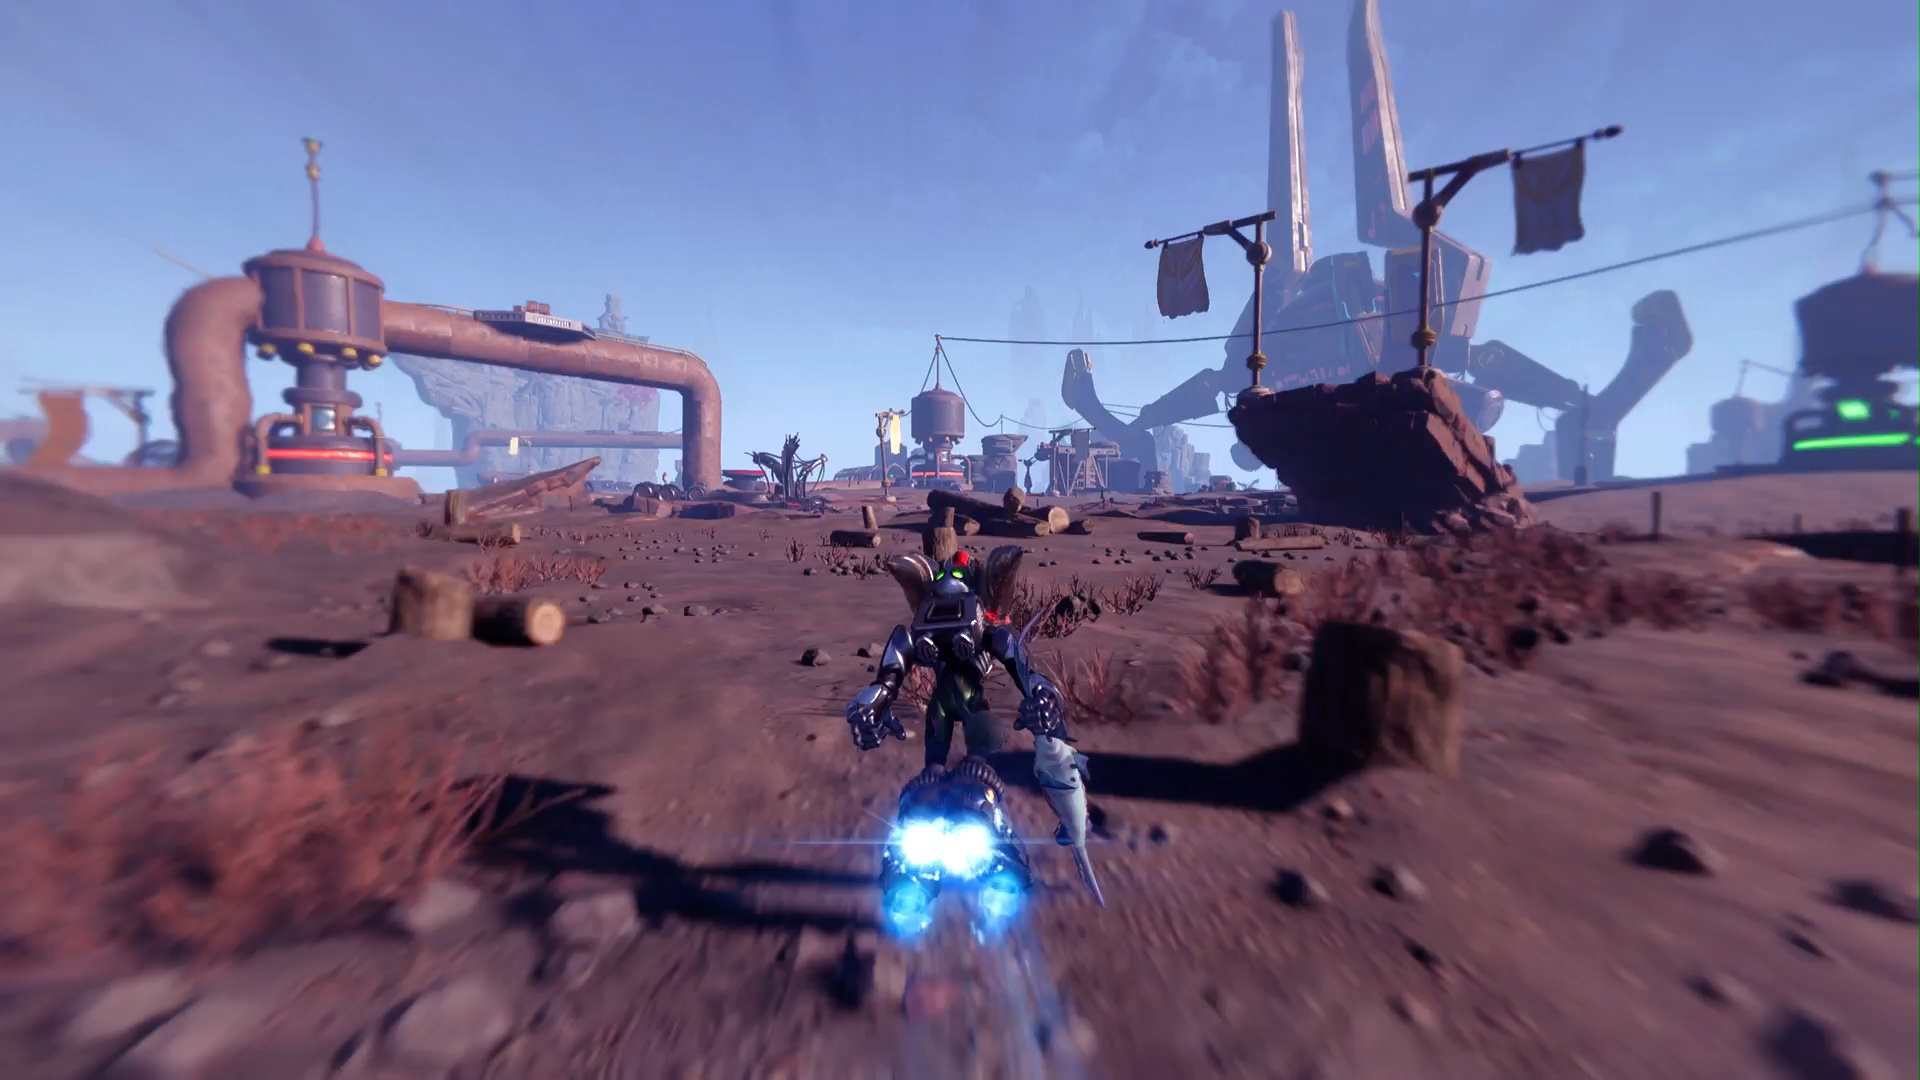 A screenshot of Ratchet using the Hoverboots in a desert